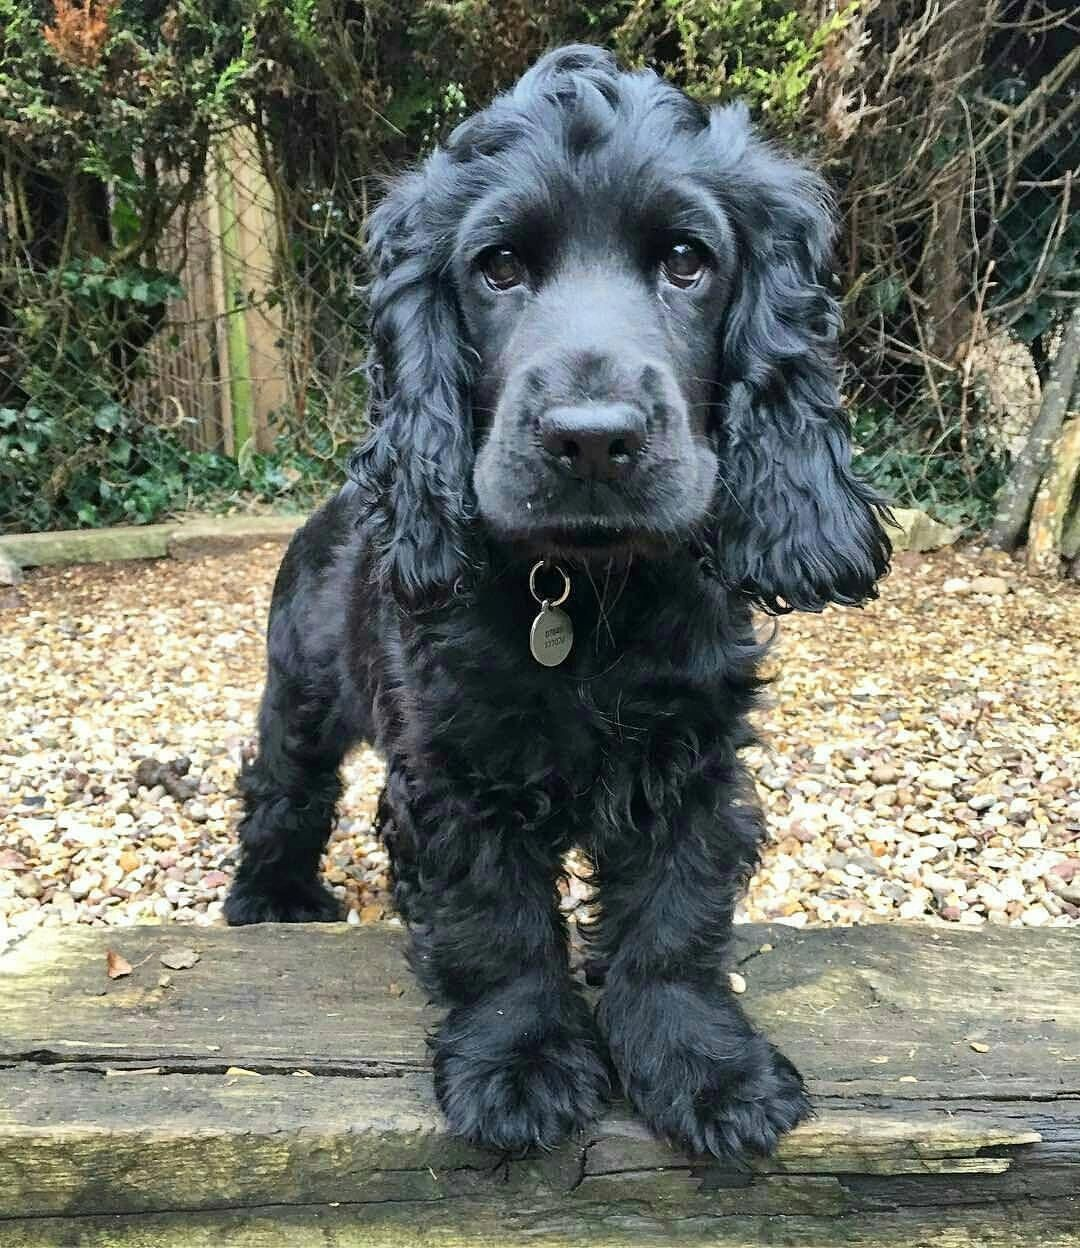 Exceptional Spaniels Information Is Available On Our Internet Site Check It Out And You Wont Be Sorry Black Cocker Spaniel Puppies Cocker Spaniel Puppies Dogs